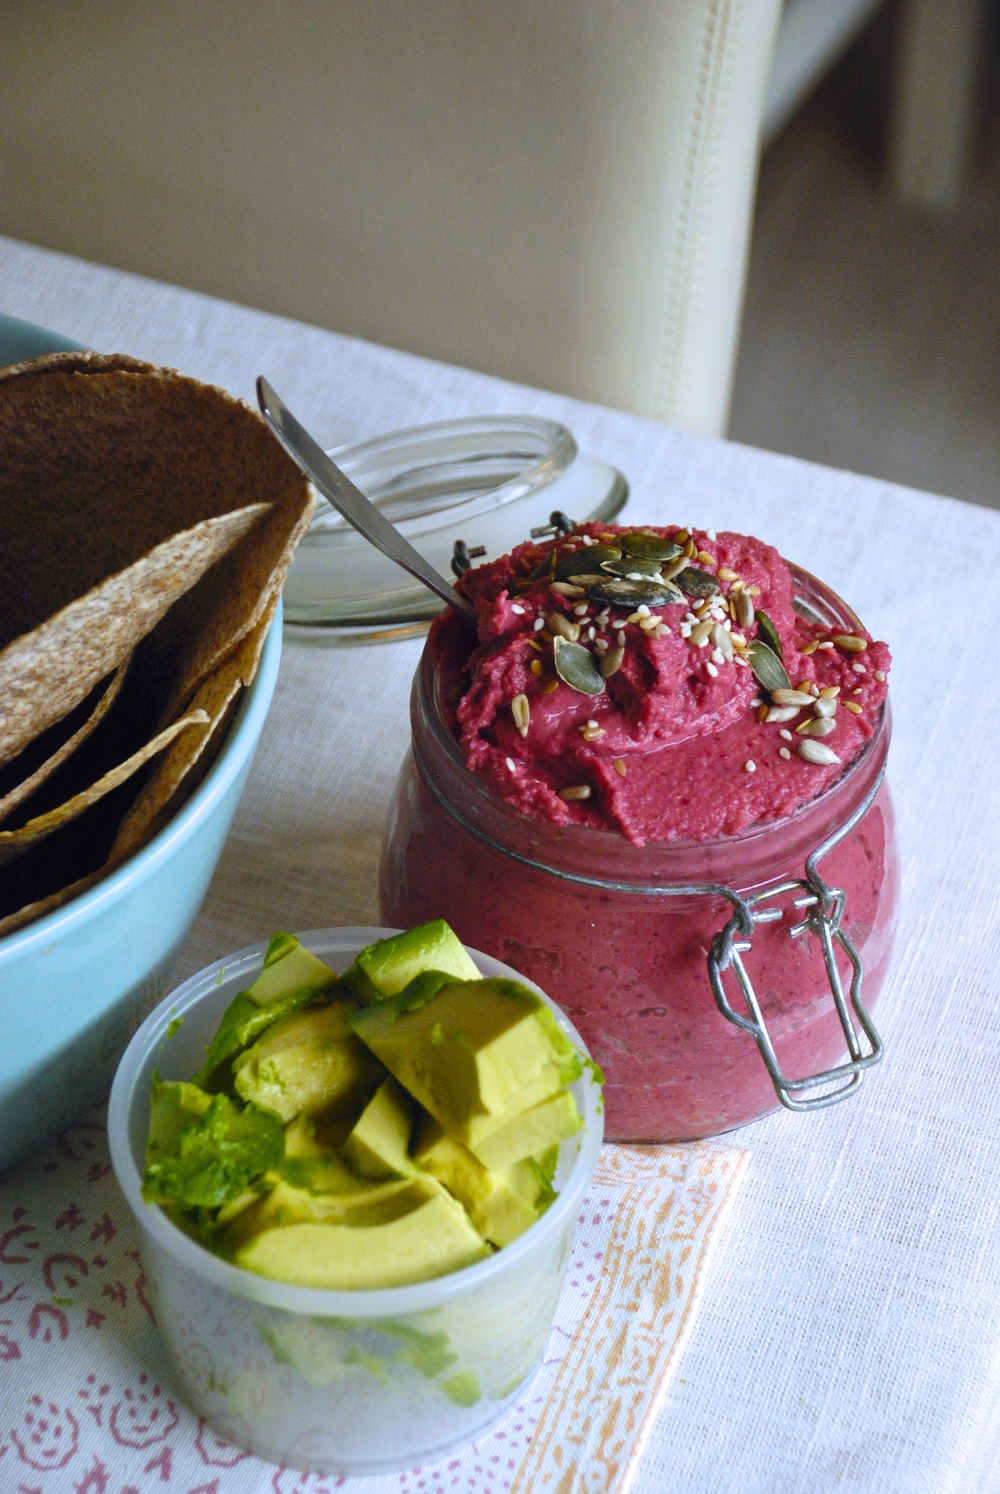 Beetroot hummus for breakfast